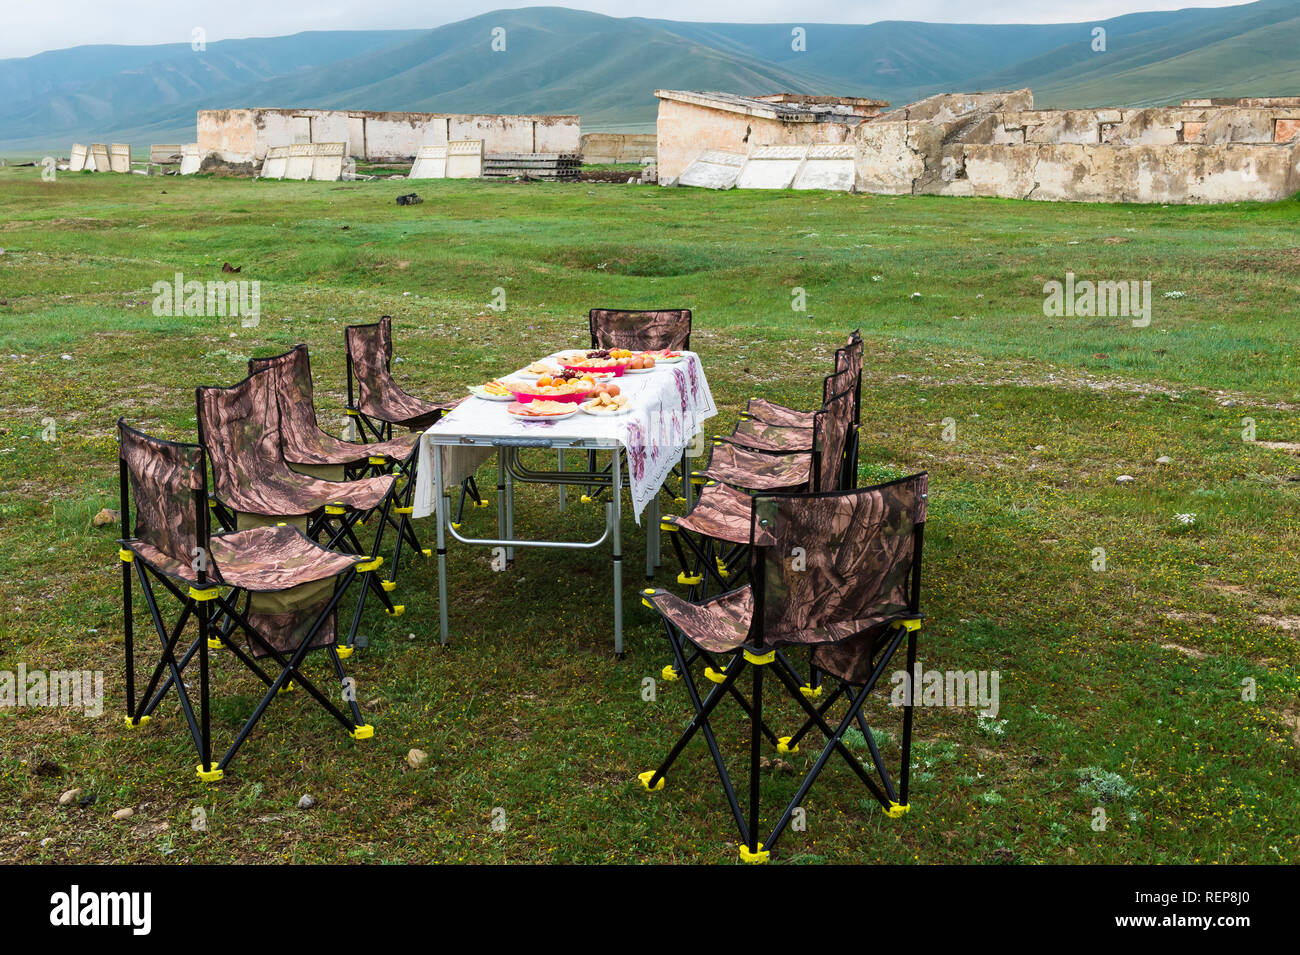 Having picnic near road to Song Kol Lake, Naryn province, Kyrgyzstan, Central Asia - Stock Image